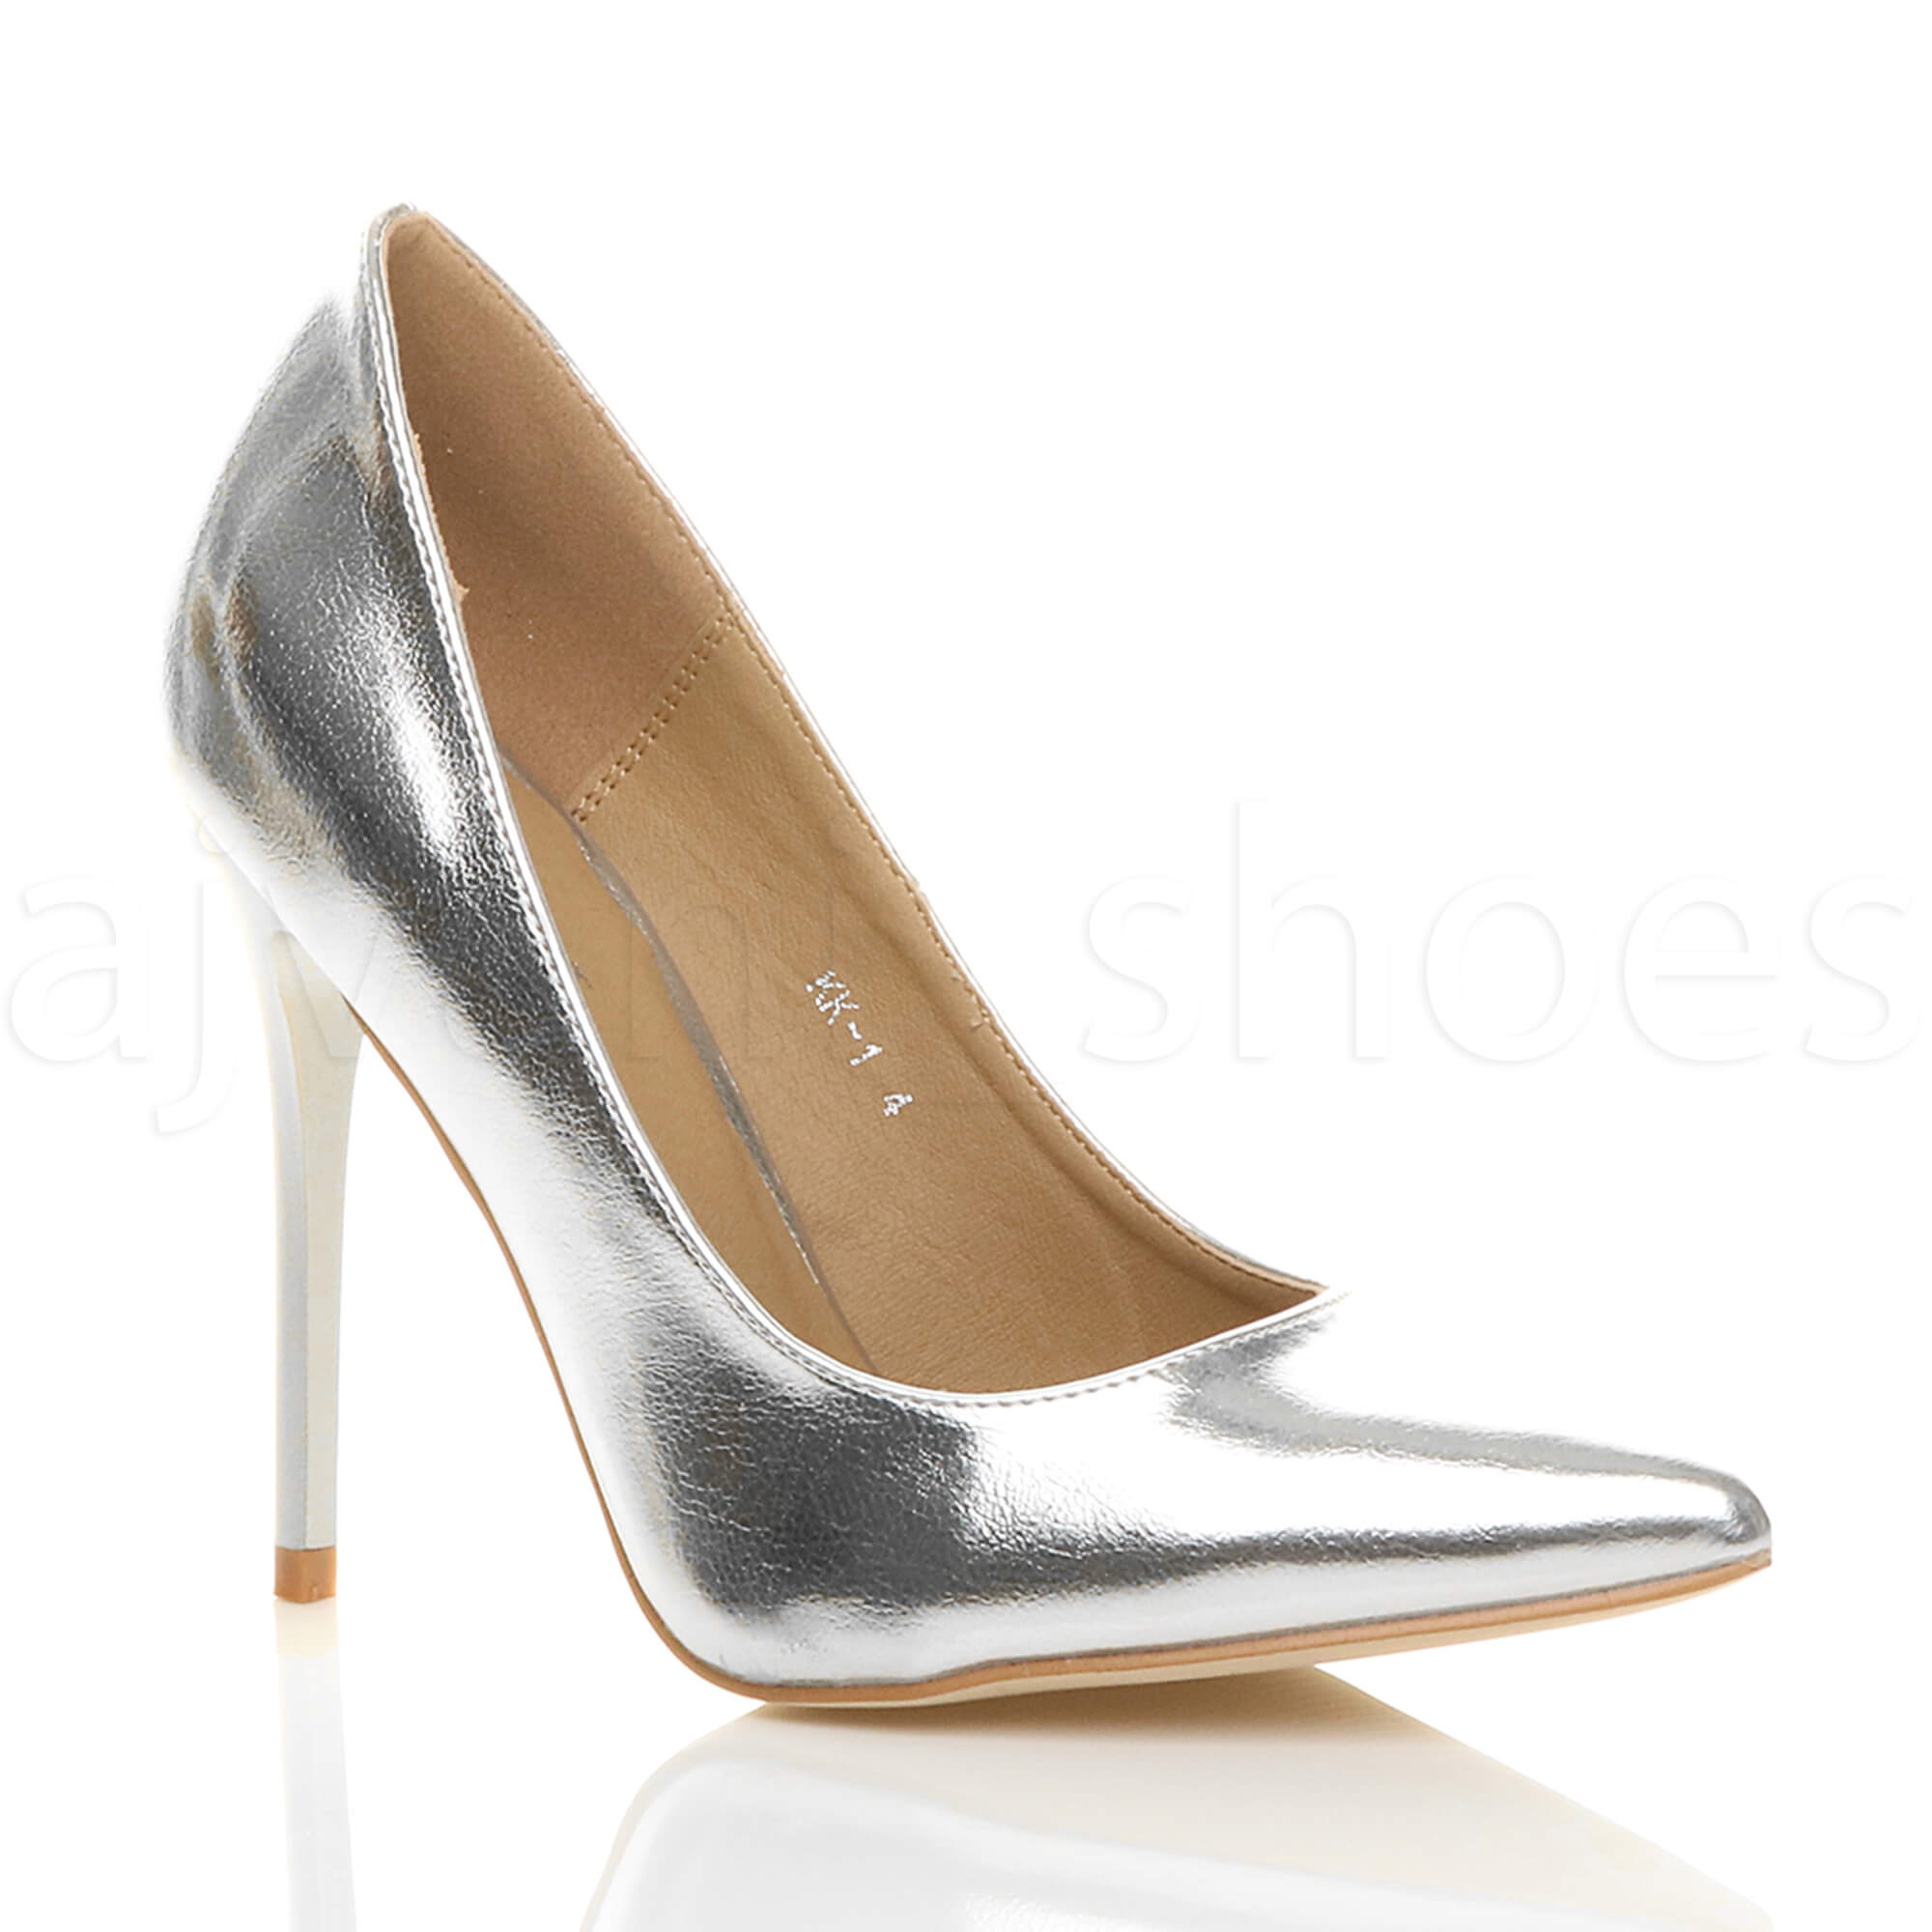 WOMENS-LADIES-HIGH-HEEL-POINTED-CONTRAST-COURT-SMART-PARTY-WORK-SHOES-PUMPS-SIZE thumbnail 192